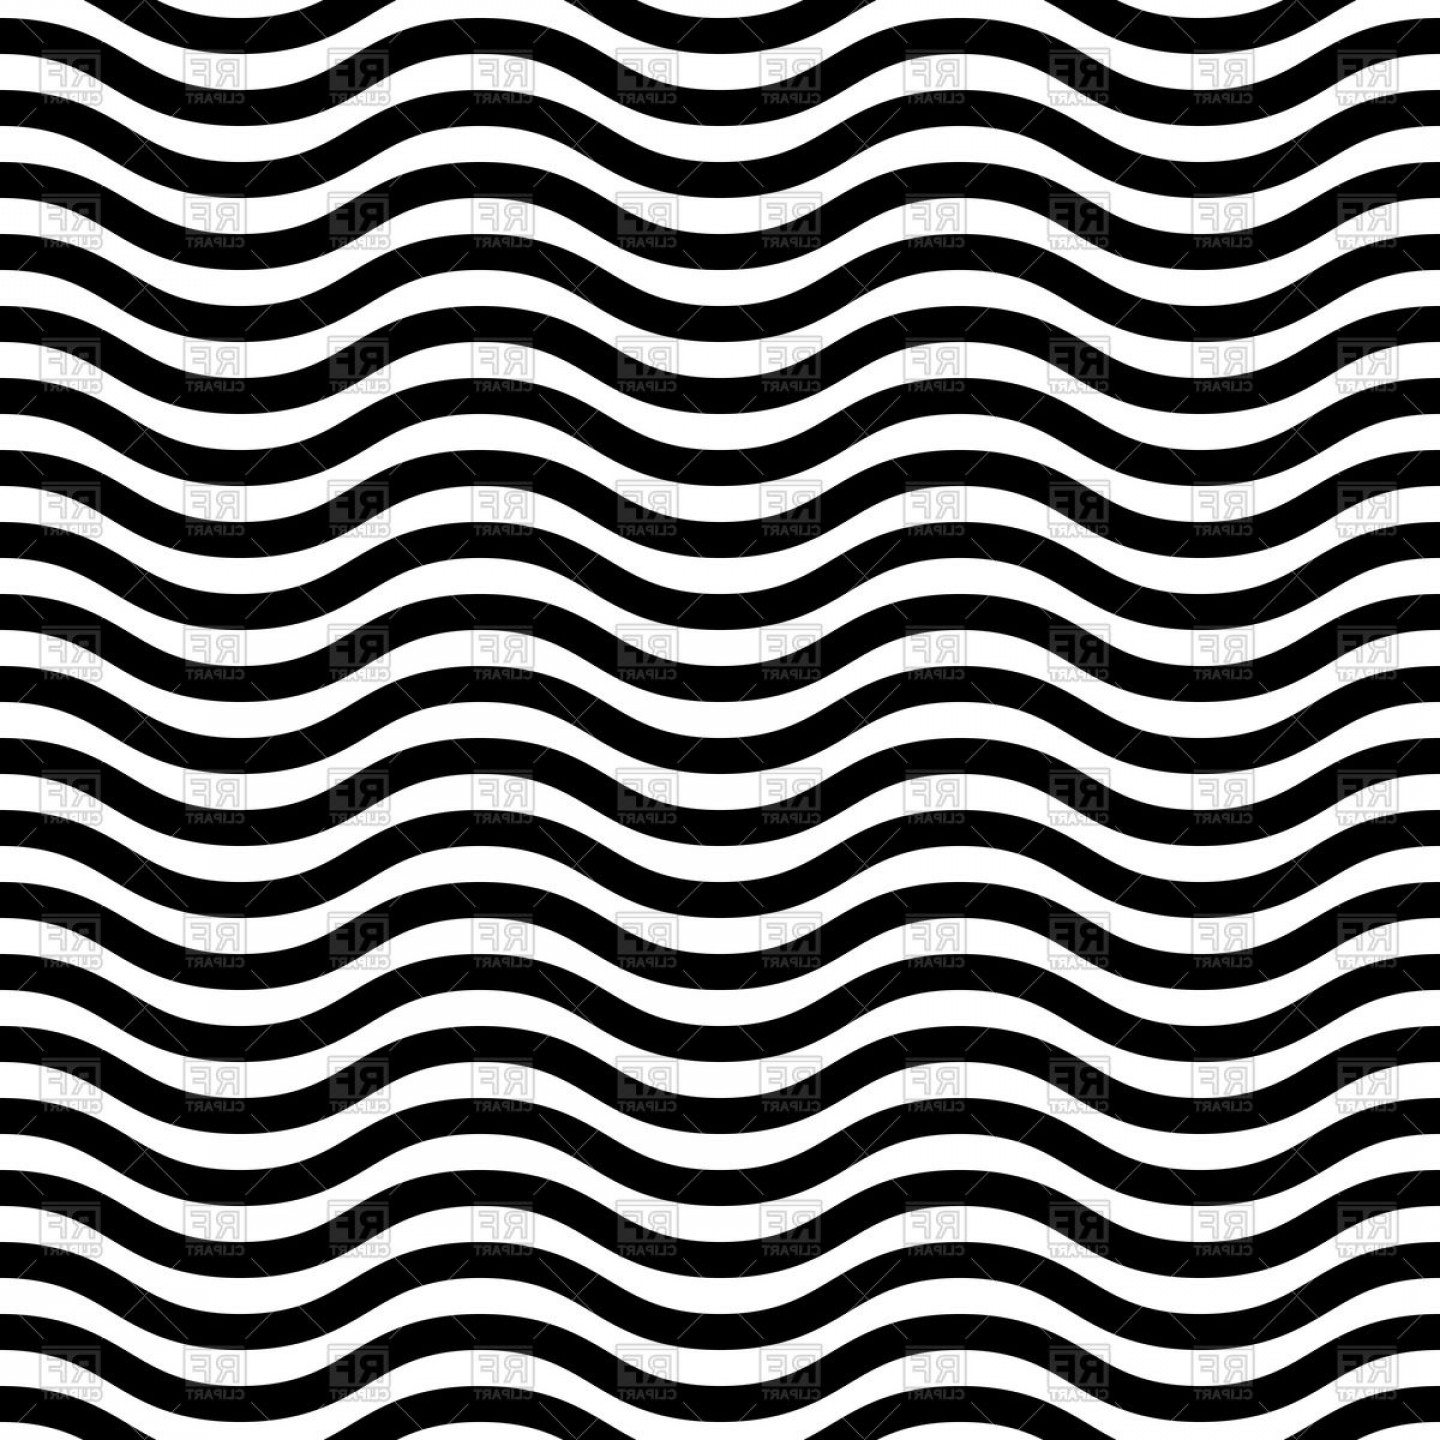 Wavy Line Illustrator Vector: Geometric Seamless Pattern With Black And White Wavy Lines Vector Clipart